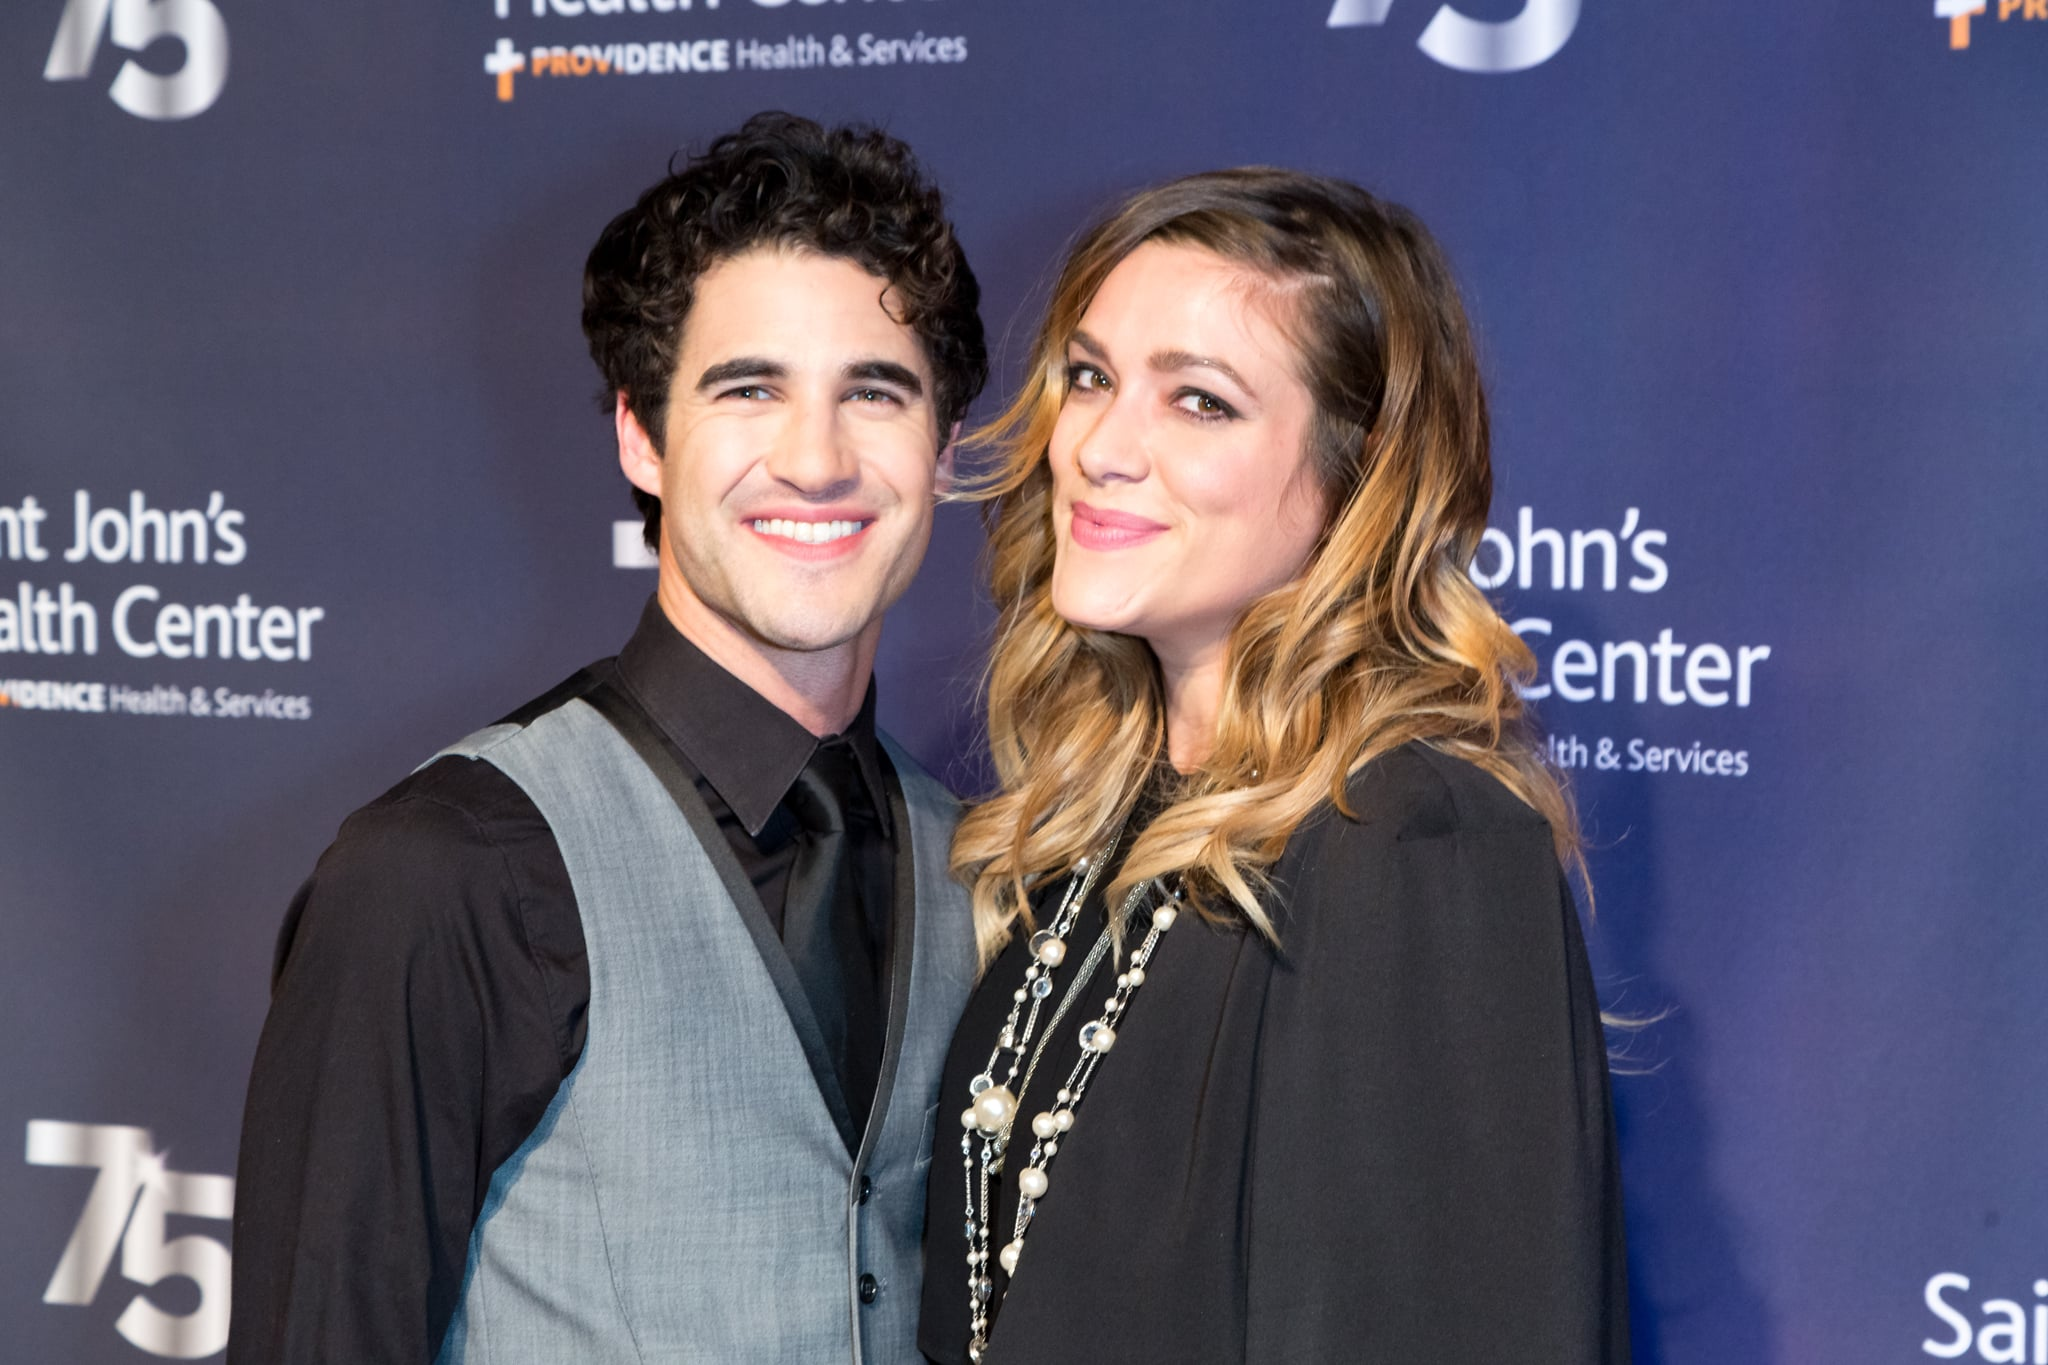 CULVER CITY, CA - OCTOBER 21:  Singer-songwriter Darren Criss and Director Mia Swier attend the Saint John's Health Center Foundation's 75th Anniversary Gala Celebration at 3LABS on October 21, 2017 in Culver City, California.  (Photo by Greg Doherty/Getty Images,)